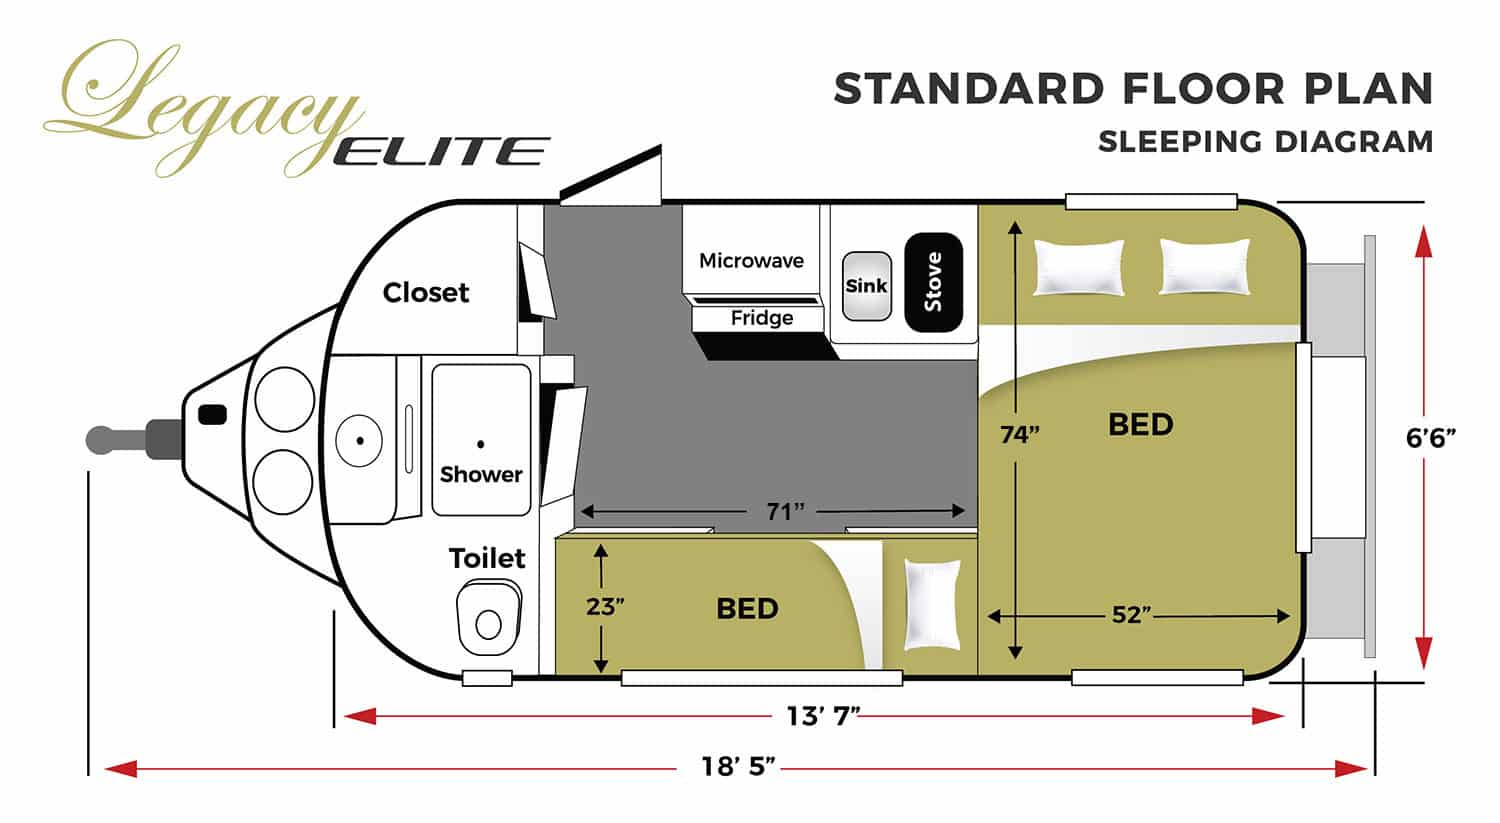 oliver travel trailers legacy elite 1 standard sleeping floor plan horizontal